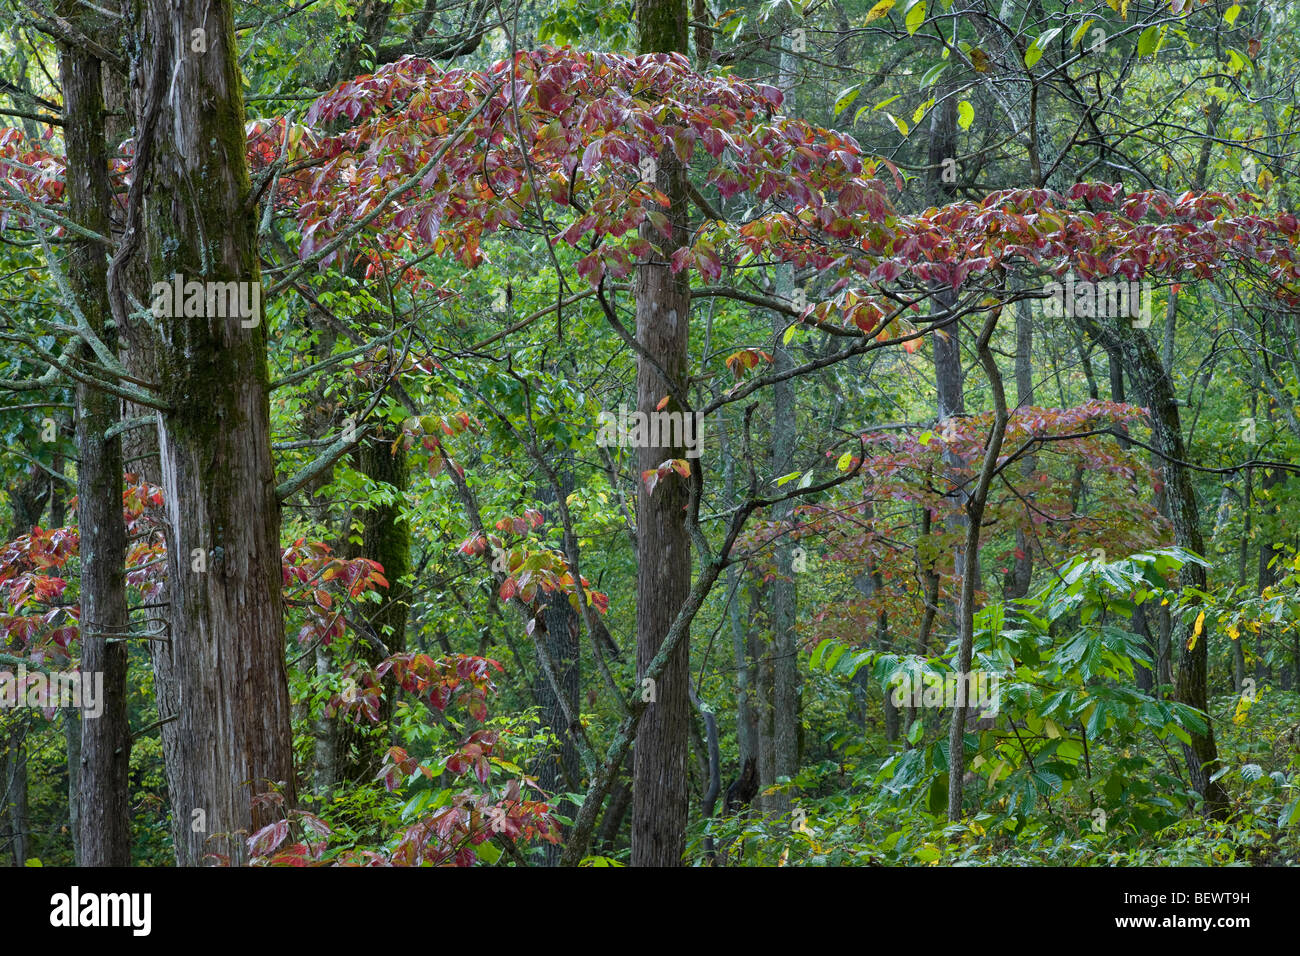 Dogwood Tree Autumn Stock Photos & Dogwood Tree Autumn Stock Images ...